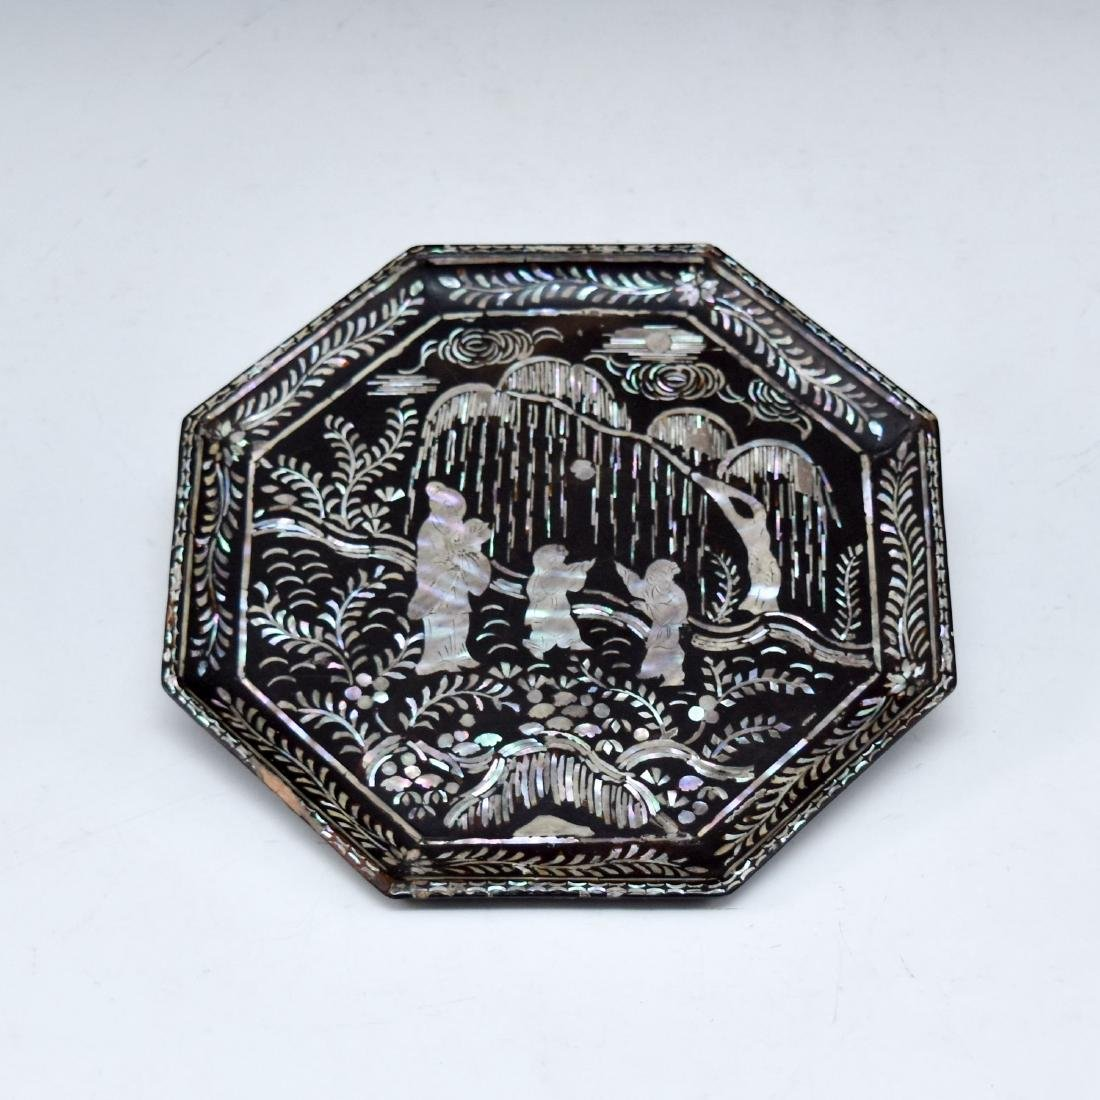 MOTHER OF PEARLS INLAID EBONY LACQUERED OCTAGONAL PLATE